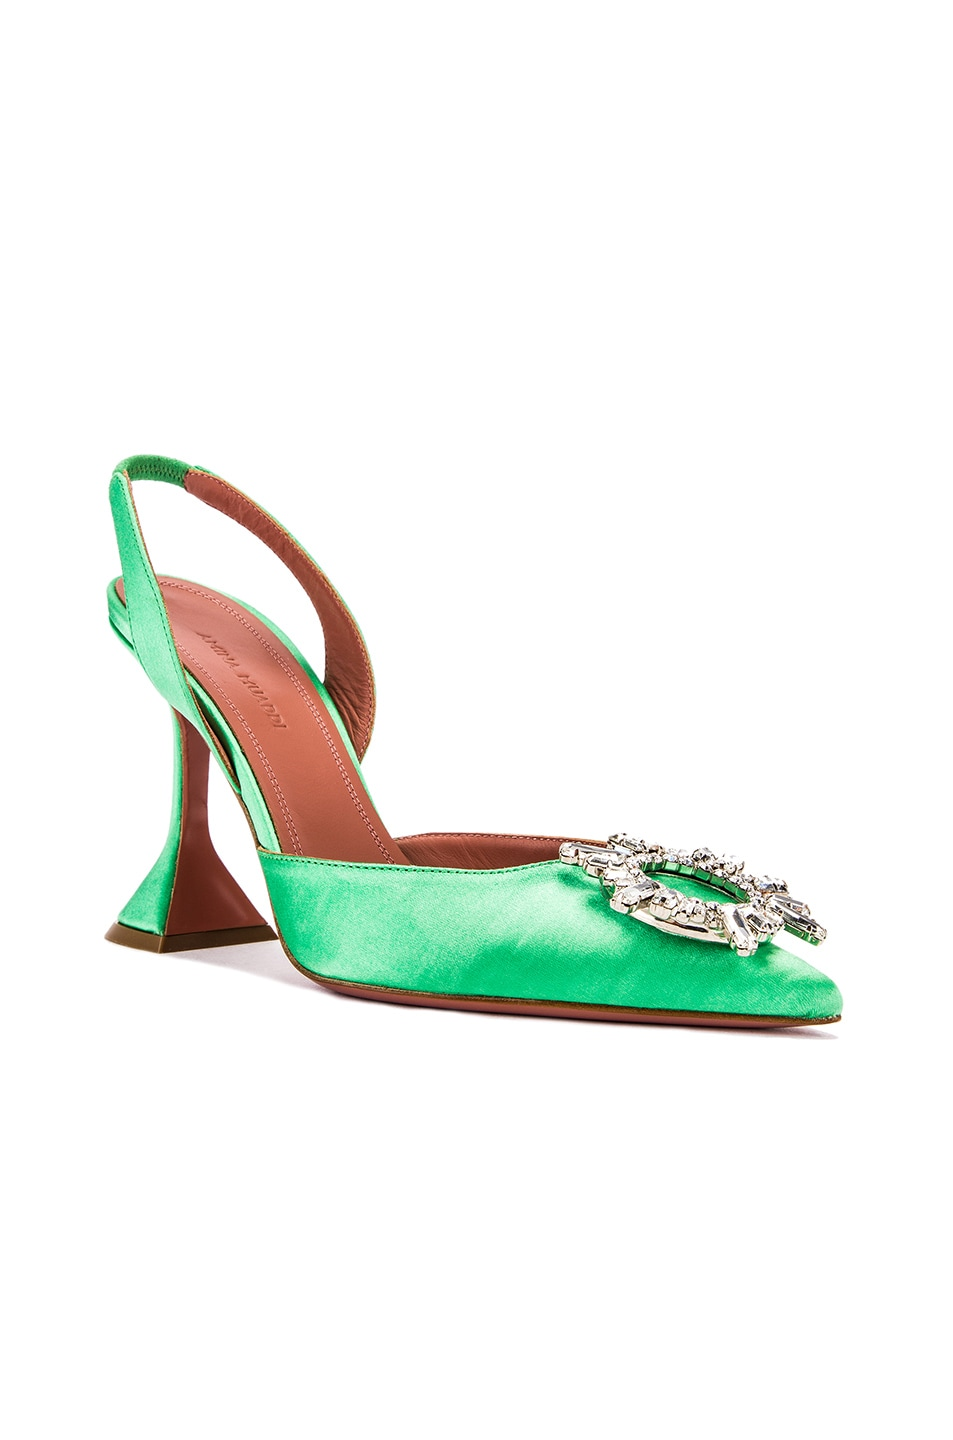 Image 2 of AMINA MUADDI Begum Satin Slingback in Aqua Green